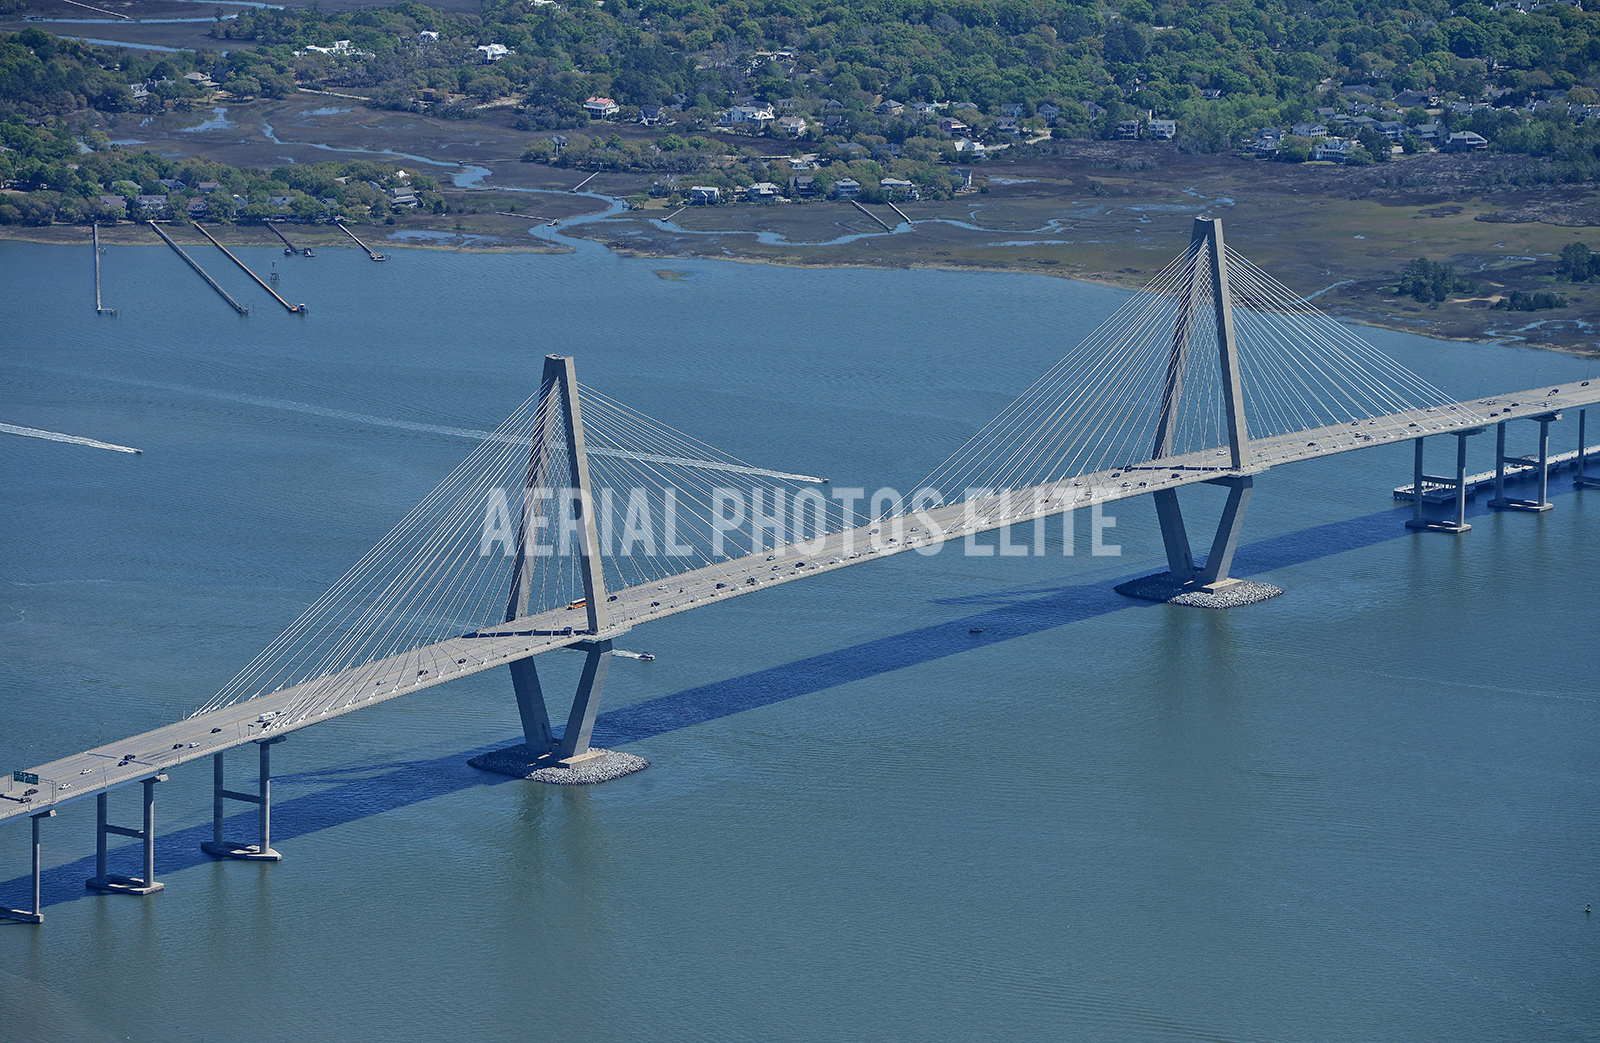 Aerial Photos Elite Cooper River Bridge Mt Pleasant SC | Aerial Photos Elite